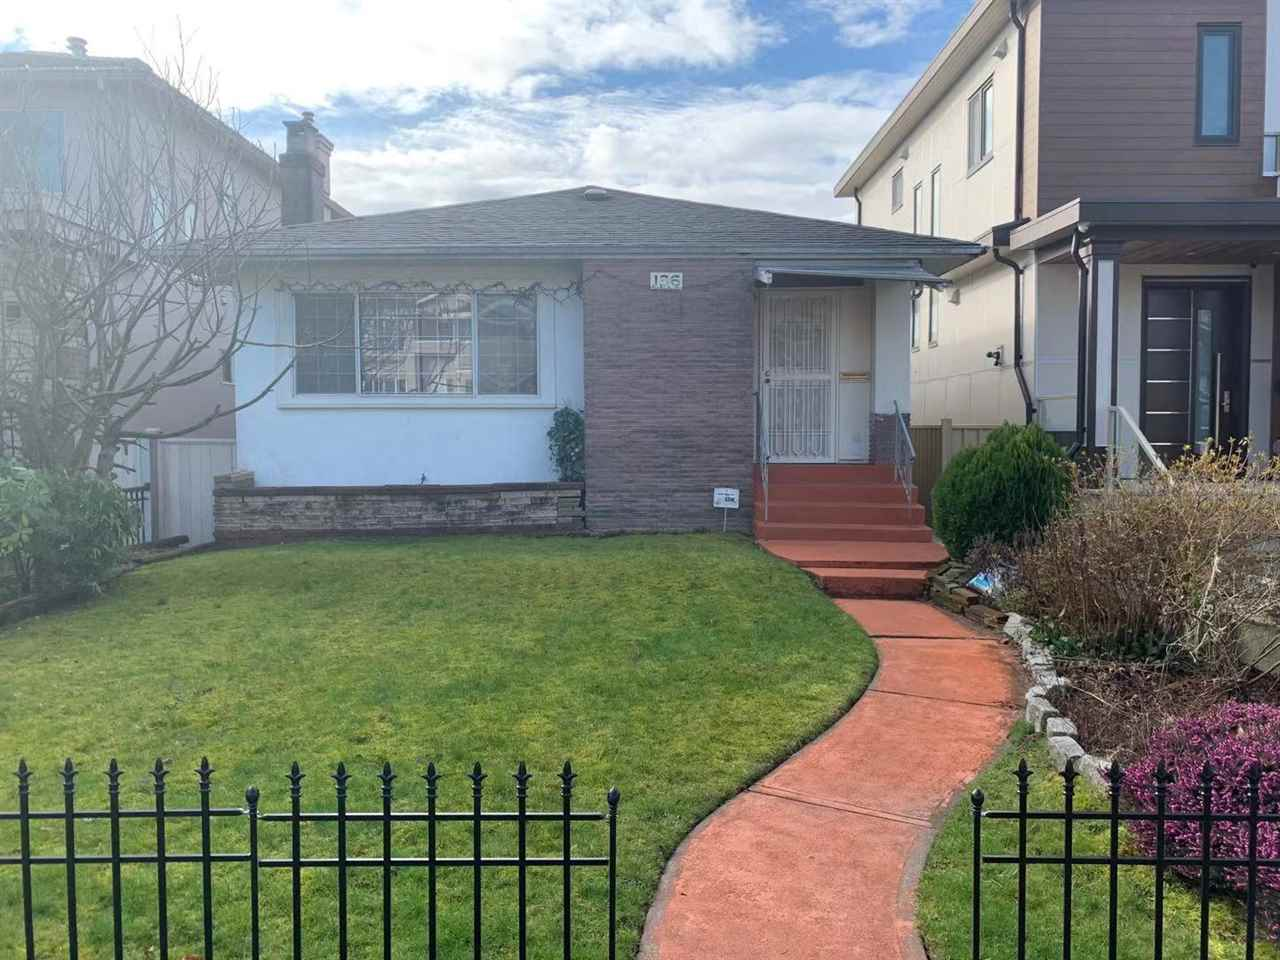 136 E 52ND AVENUE - South Vancouver House/Single Family for sale, 4 Bedrooms (R2542557)